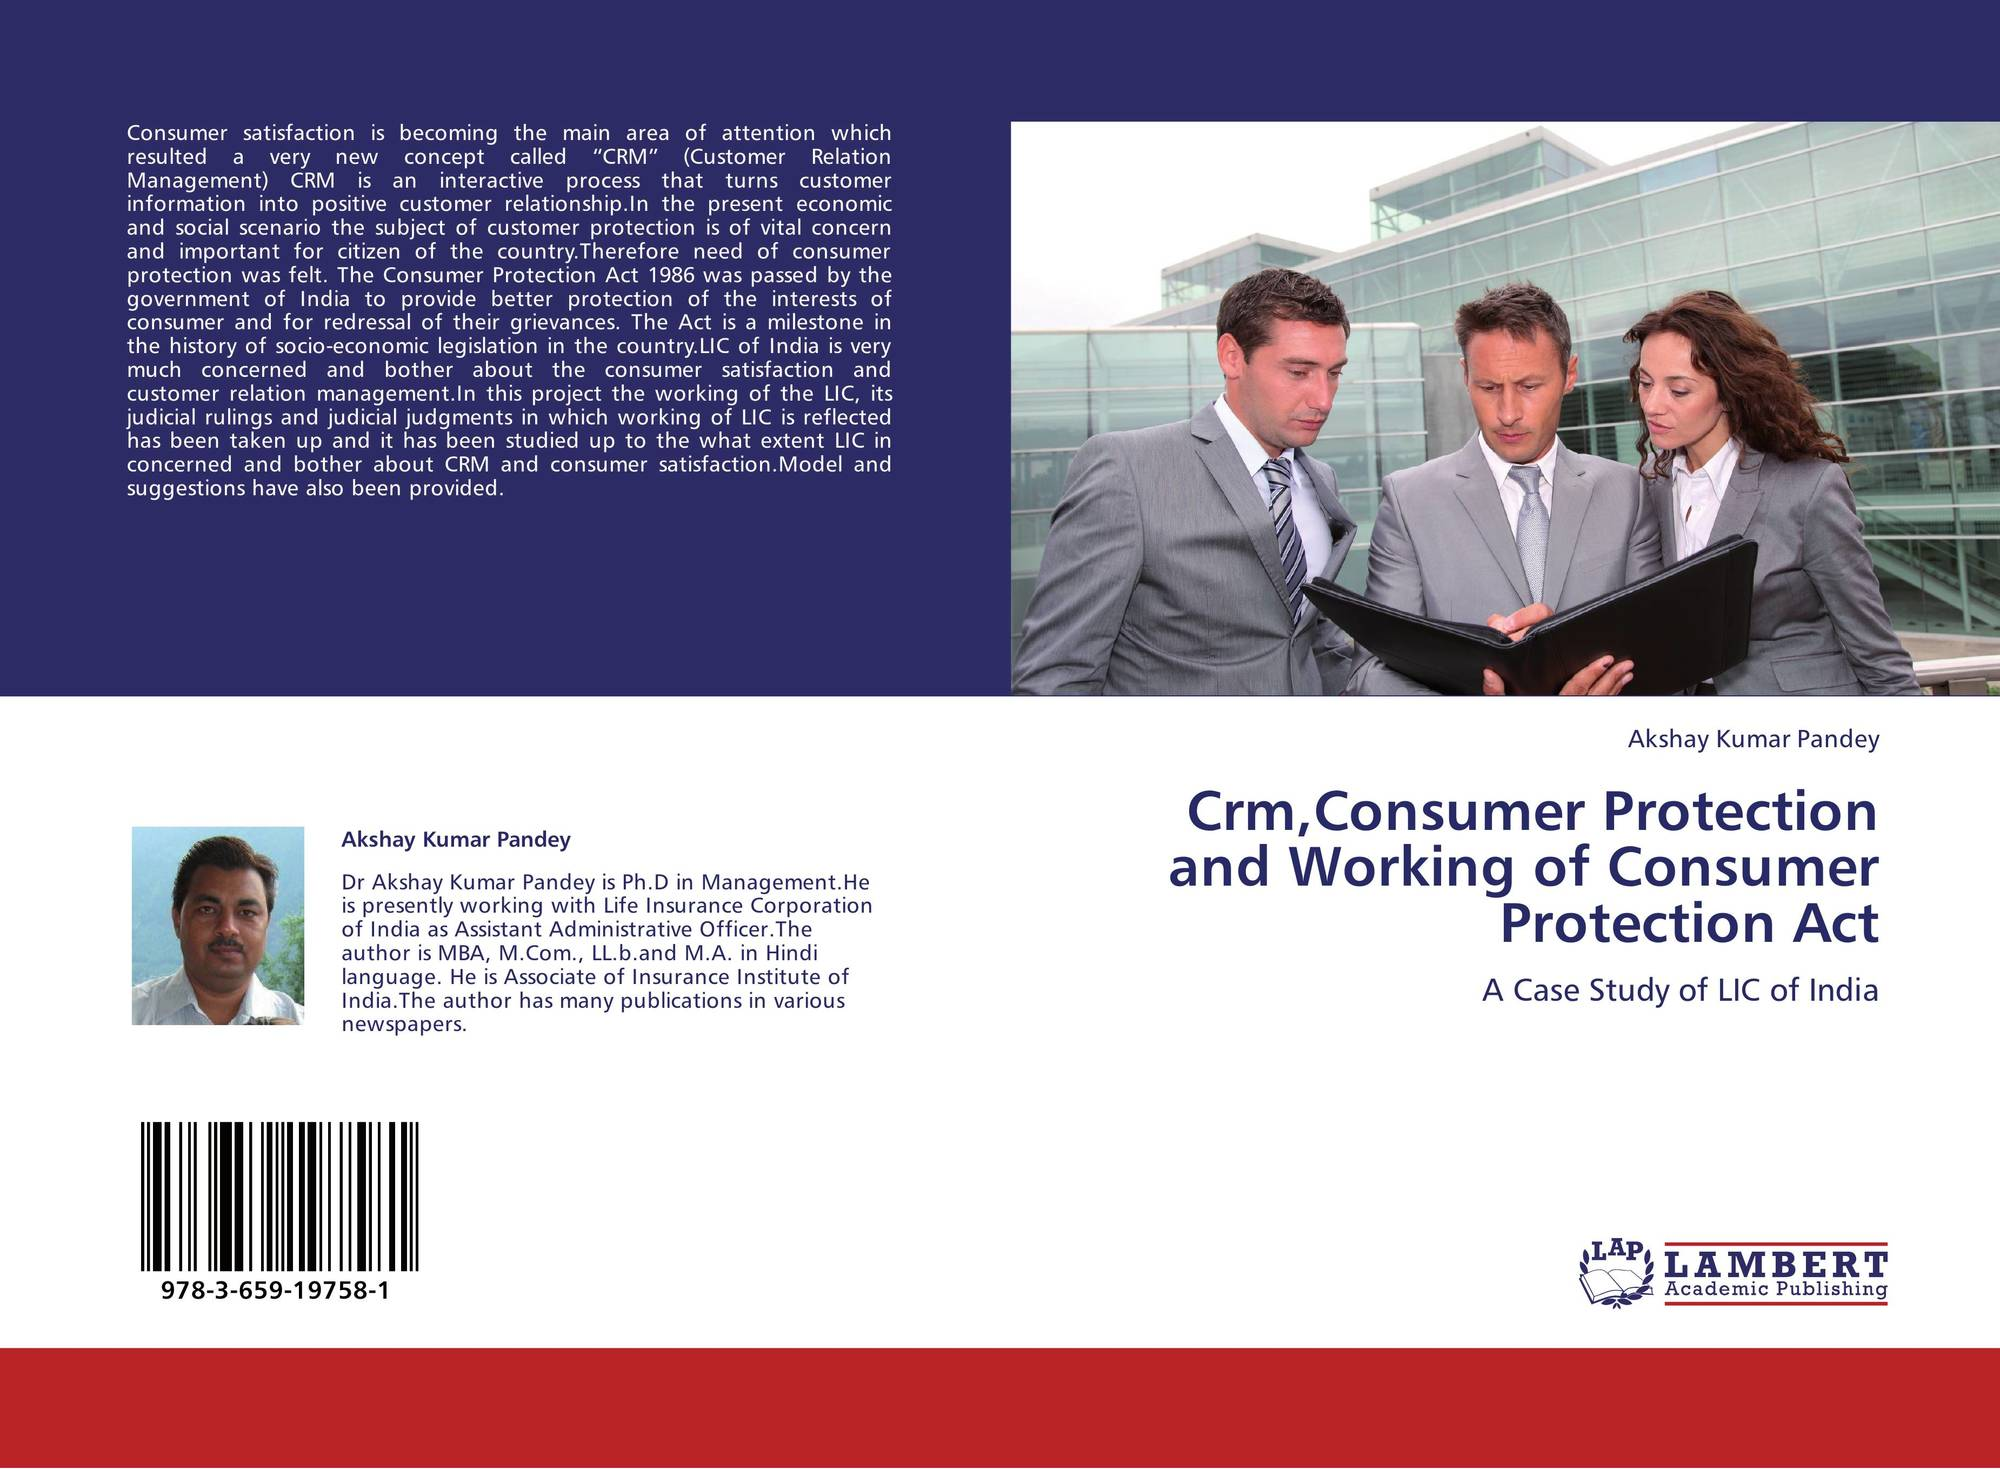 Crm,Consumer Protection and Working of Consumer Protection